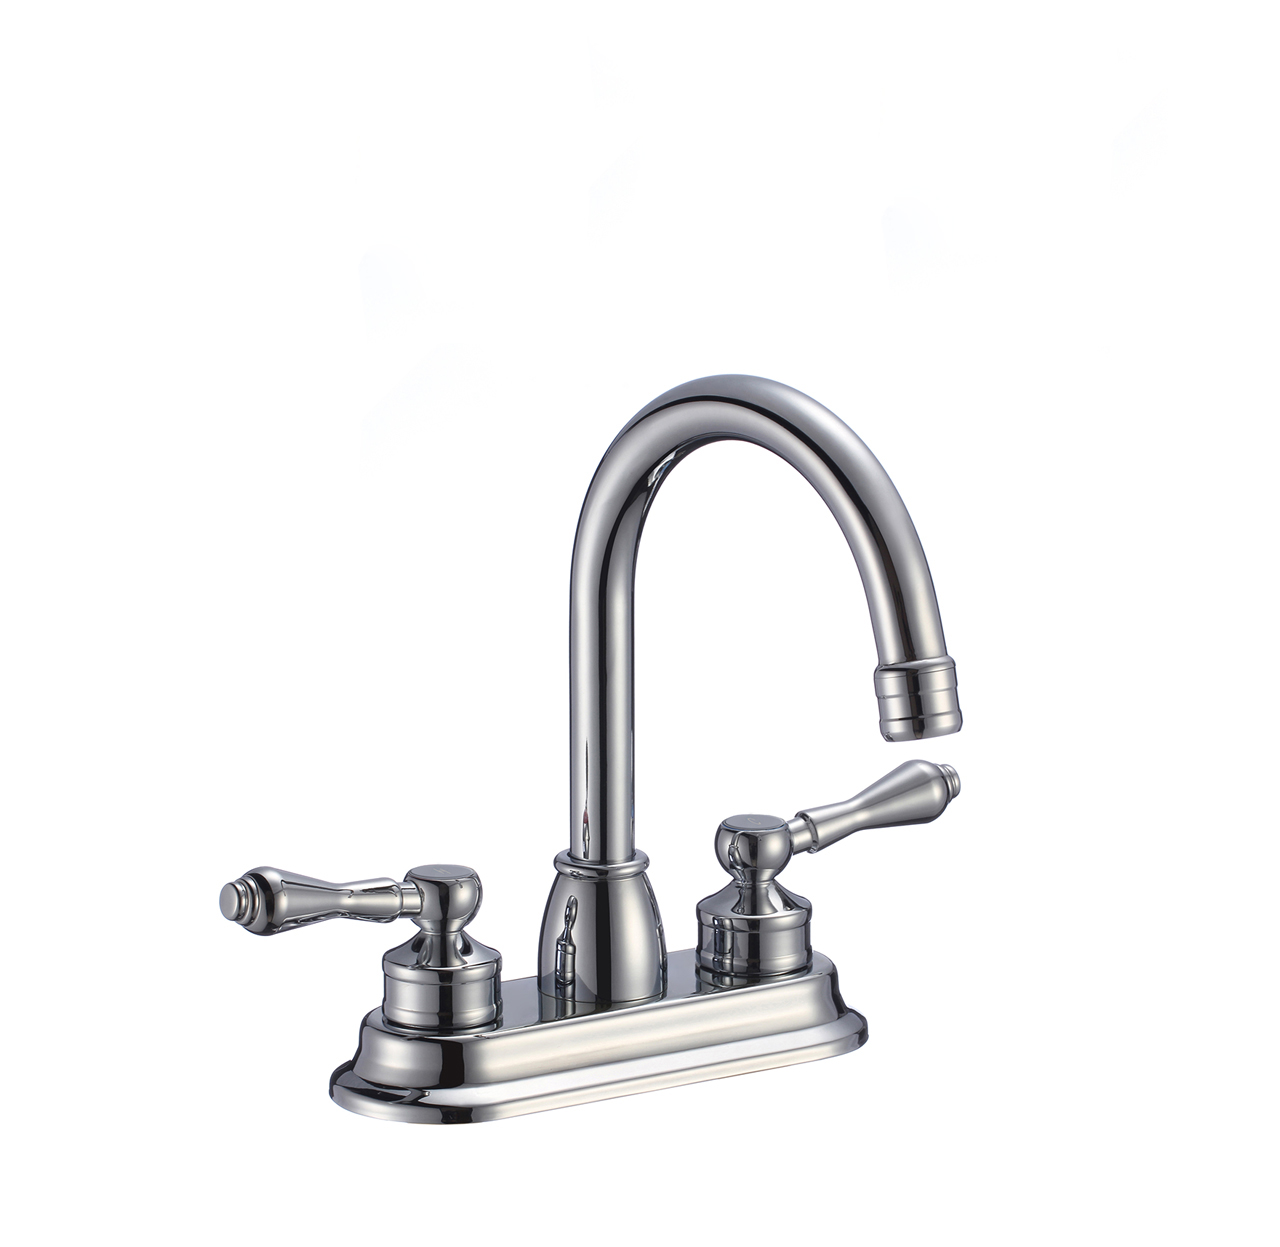 Shop Rennes Dual Handle Solid Brass Bathroom Sink Faucet At Bathselect